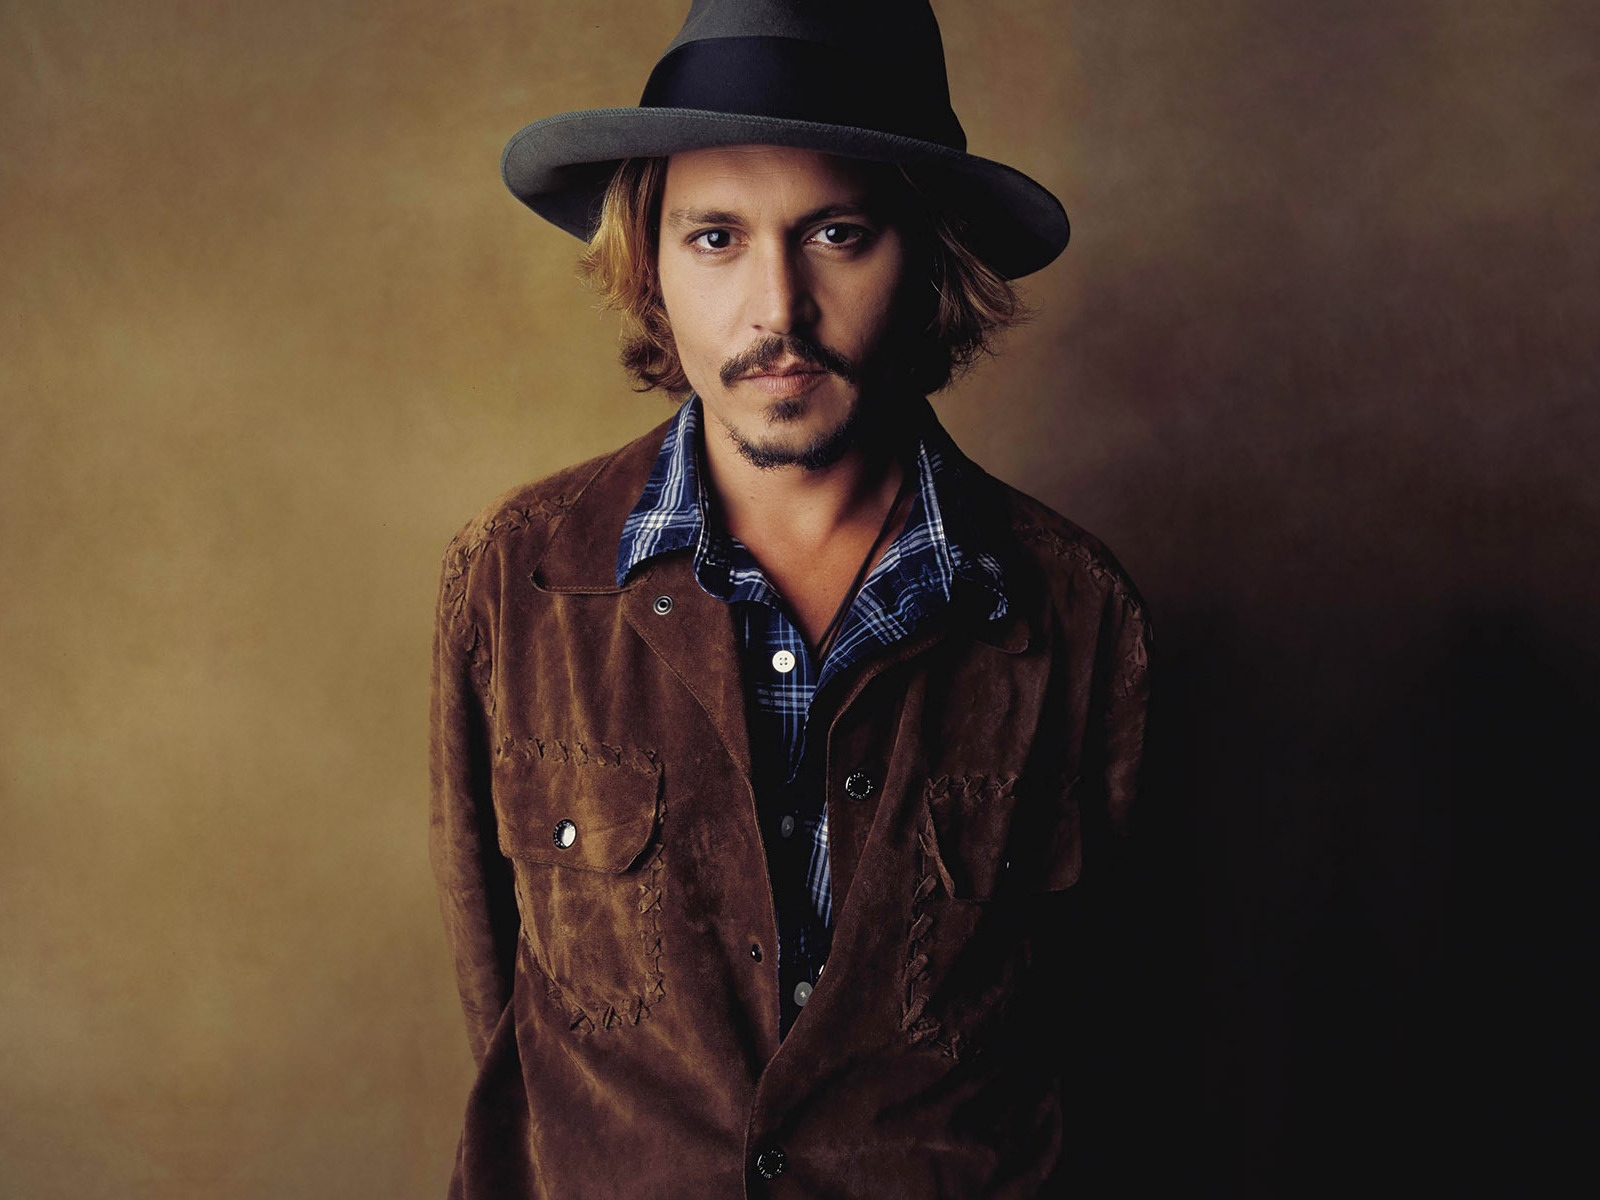 Johnny Depp♥ - Johnny Depp Wallpaper (17791078) - Fanpop